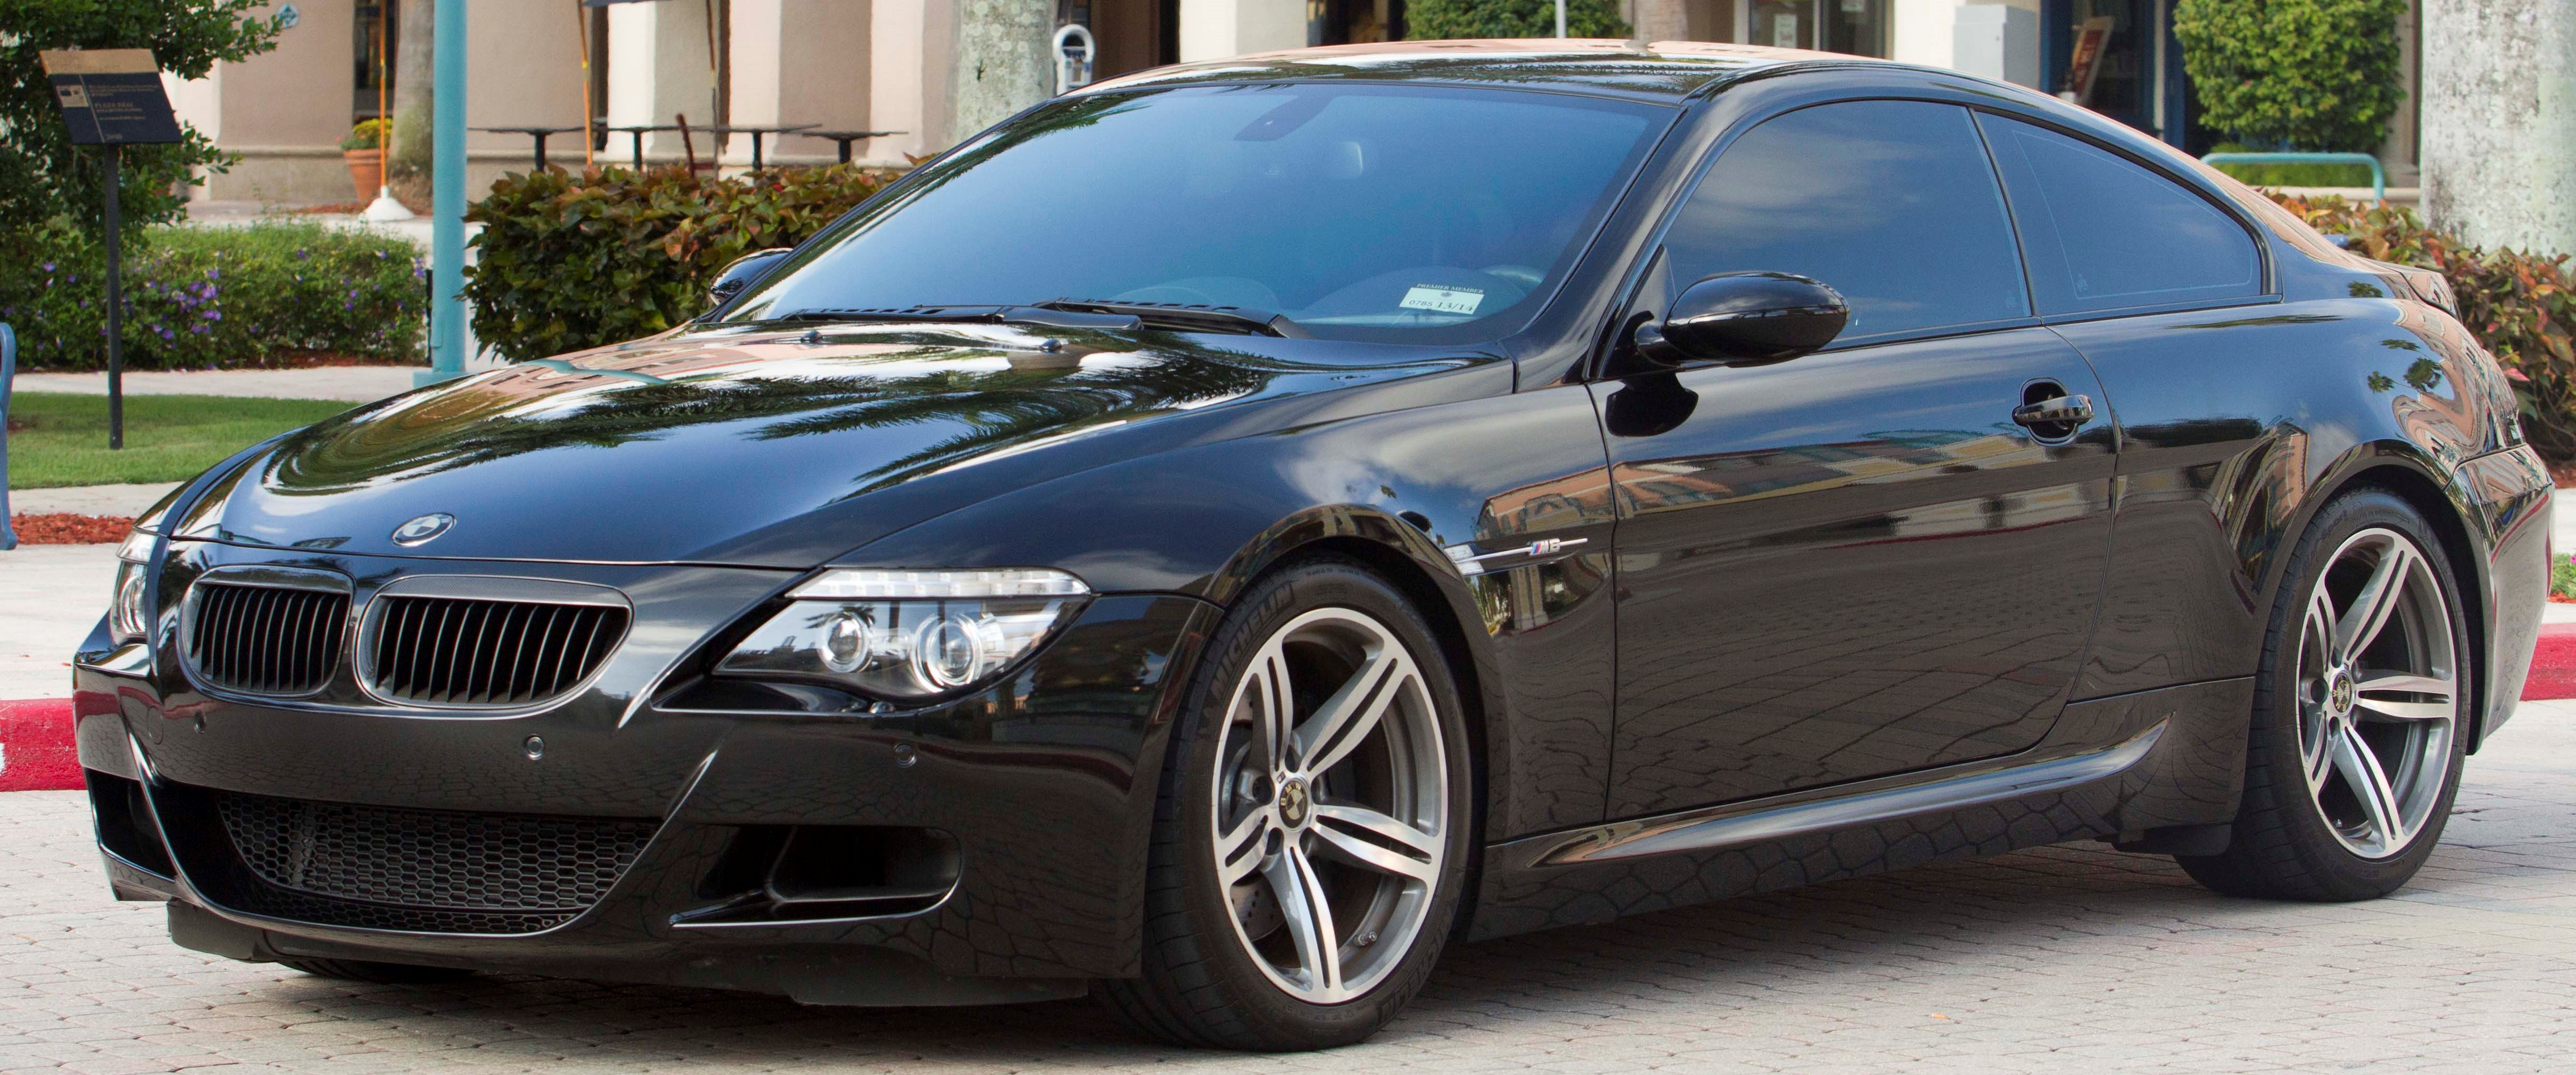 com only warranty blog one selection offers premium for special bmw wemotor weekend